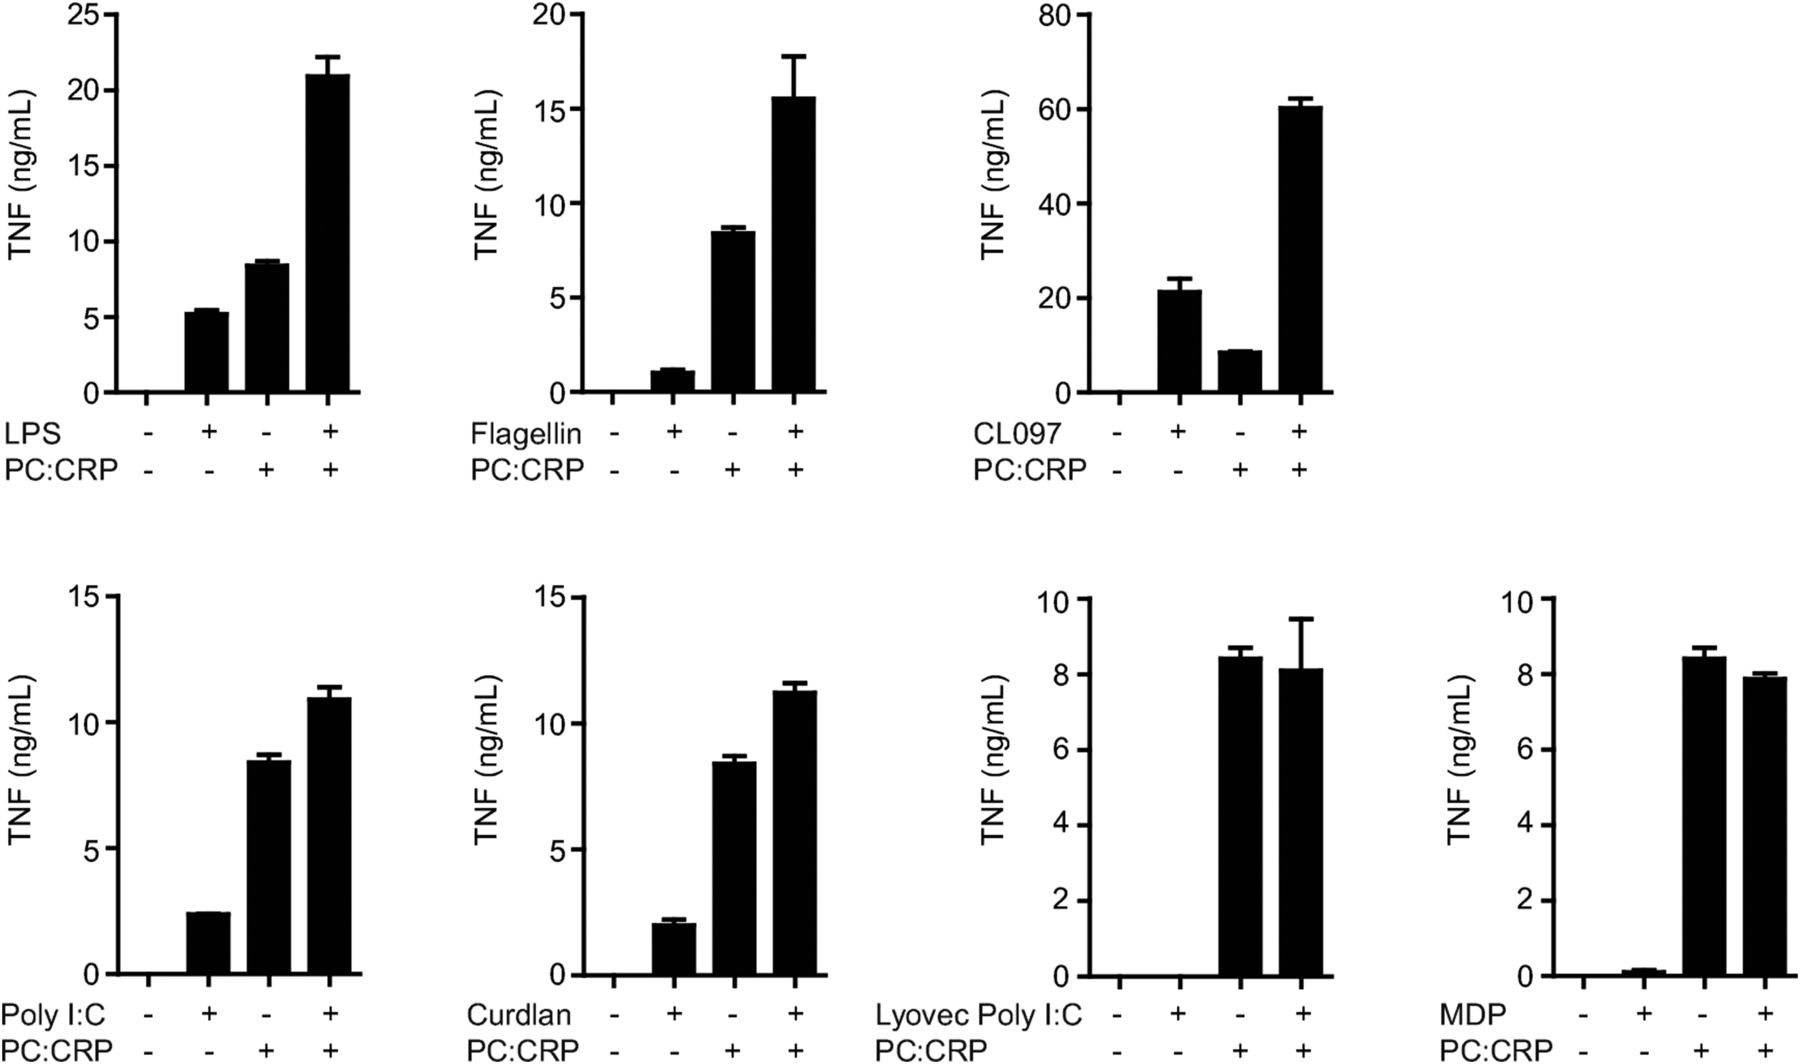 C-Reactive Protein Promotes Inflammation through FcγR-Induced